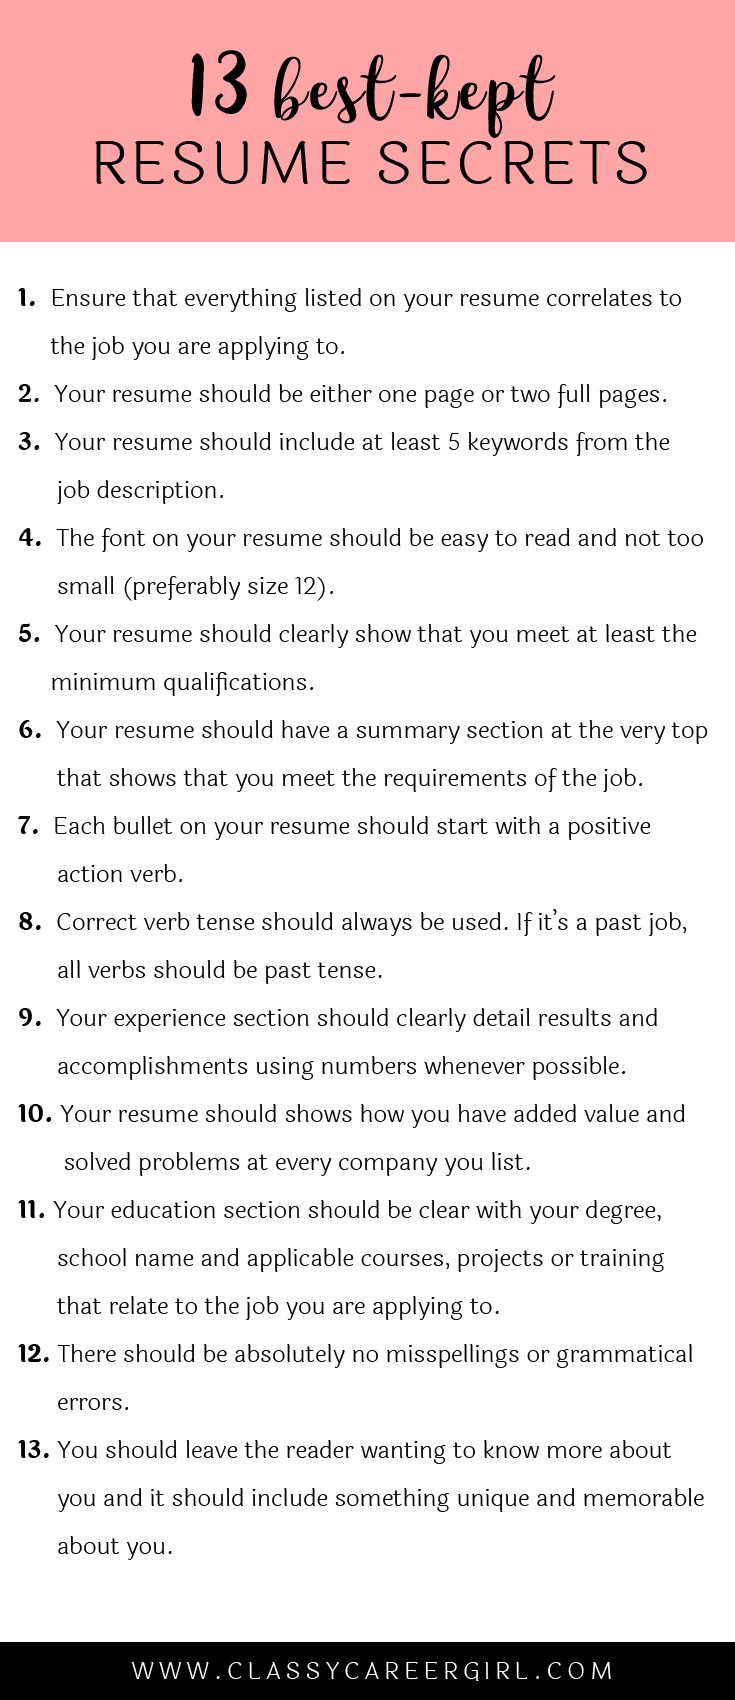 Opposenewapstandardsus  Unusual  Ideas About Resume On Pinterest  Cv Format Resume Cv And  With Fetching Some Hiring Managers Will Toss Your Resume Out If You Dont Know These  With Adorable Teacher Job Description For Resume Also Car Sales Manager Resume In Addition Resume For It And Cpa Resume Sample As Well As Objective Line On Resume Additionally Culinary Resumes From Pinterestcom With Opposenewapstandardsus  Fetching  Ideas About Resume On Pinterest  Cv Format Resume Cv And  With Adorable Some Hiring Managers Will Toss Your Resume Out If You Dont Know These  And Unusual Teacher Job Description For Resume Also Car Sales Manager Resume In Addition Resume For It From Pinterestcom